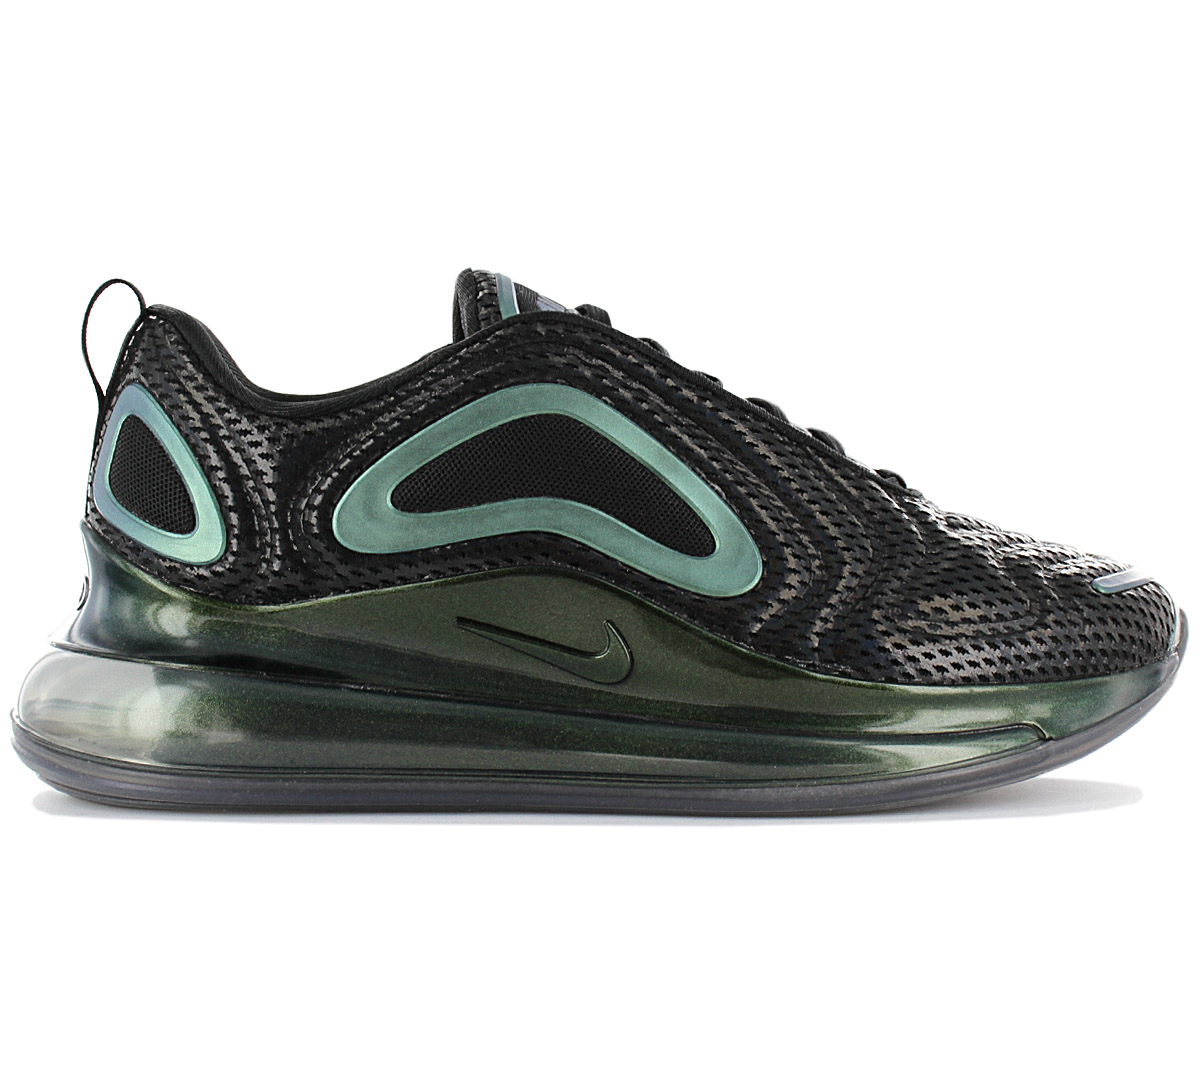 Details about Nike air max 720 Throwback Future Iridescent AO2924 003 Men's Sneaker Shoes